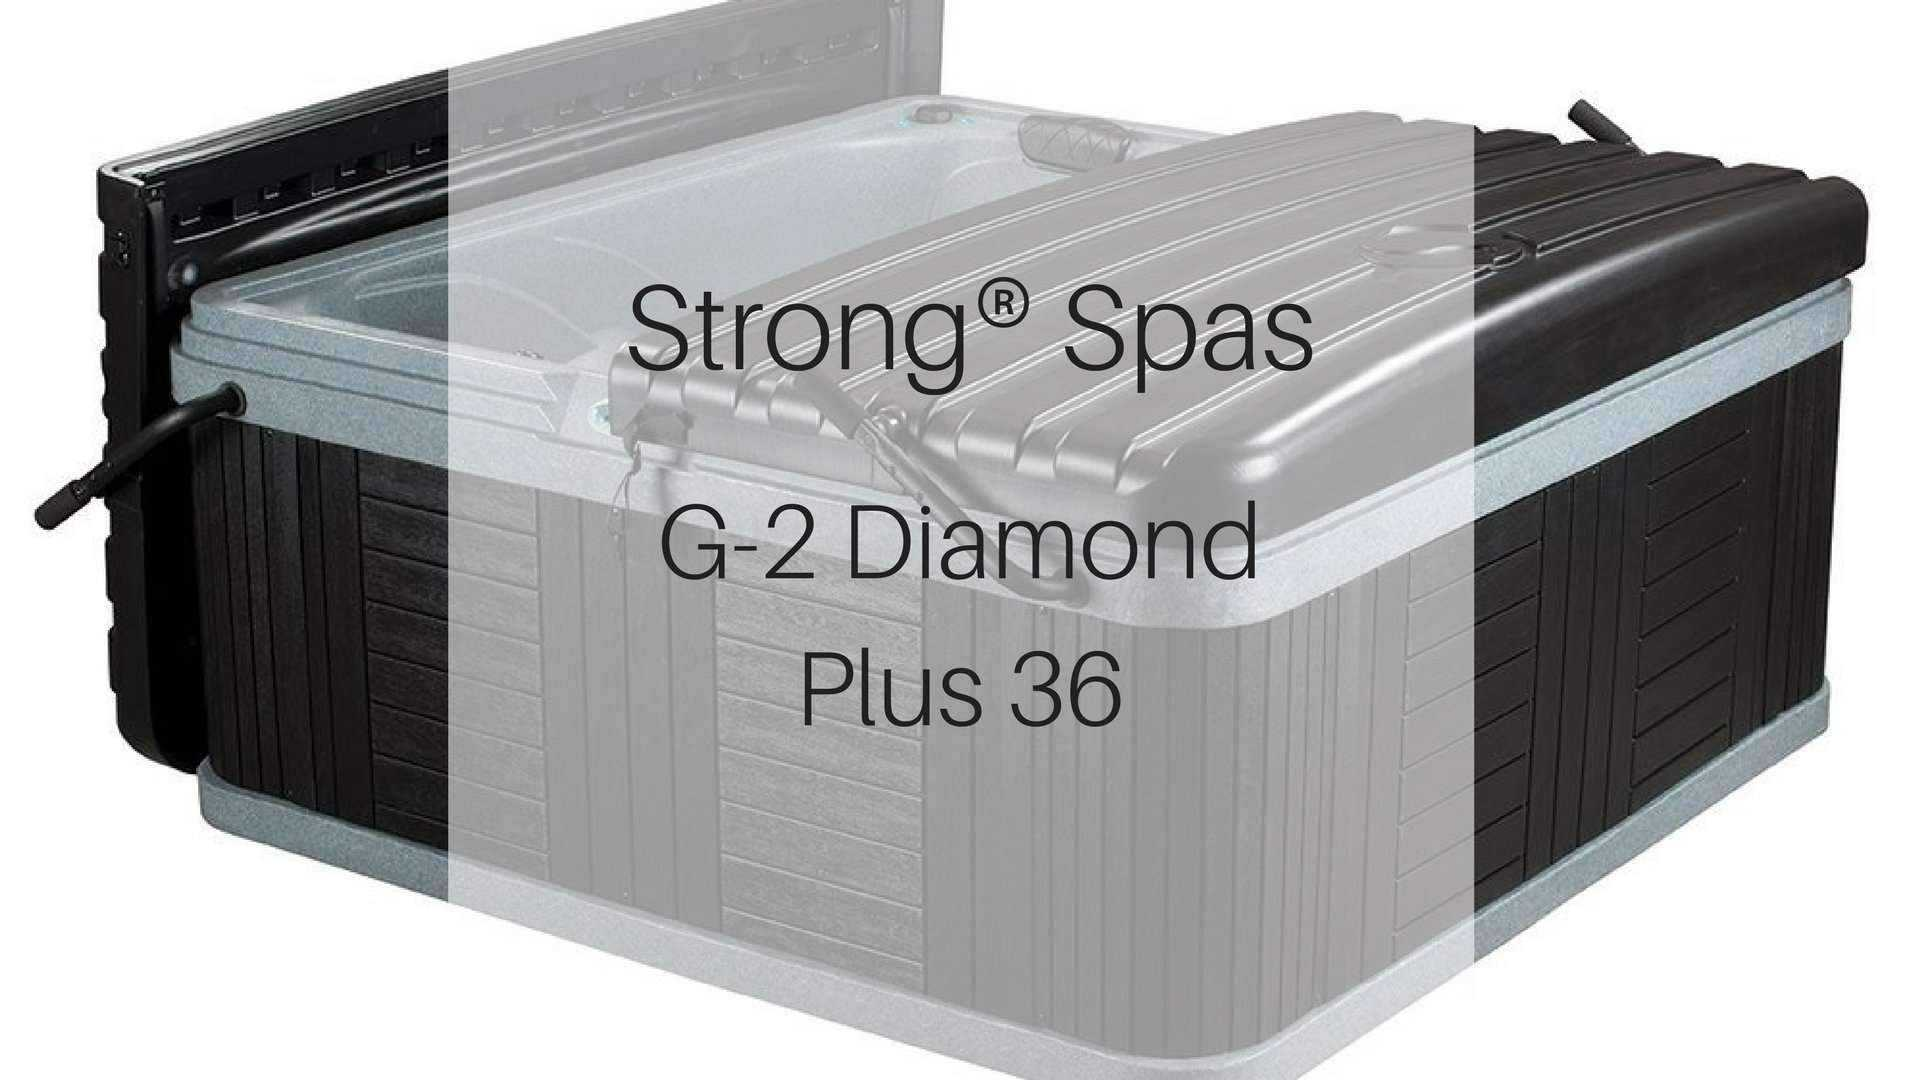 G-2 Diamond Plus 36 | Spa Palace